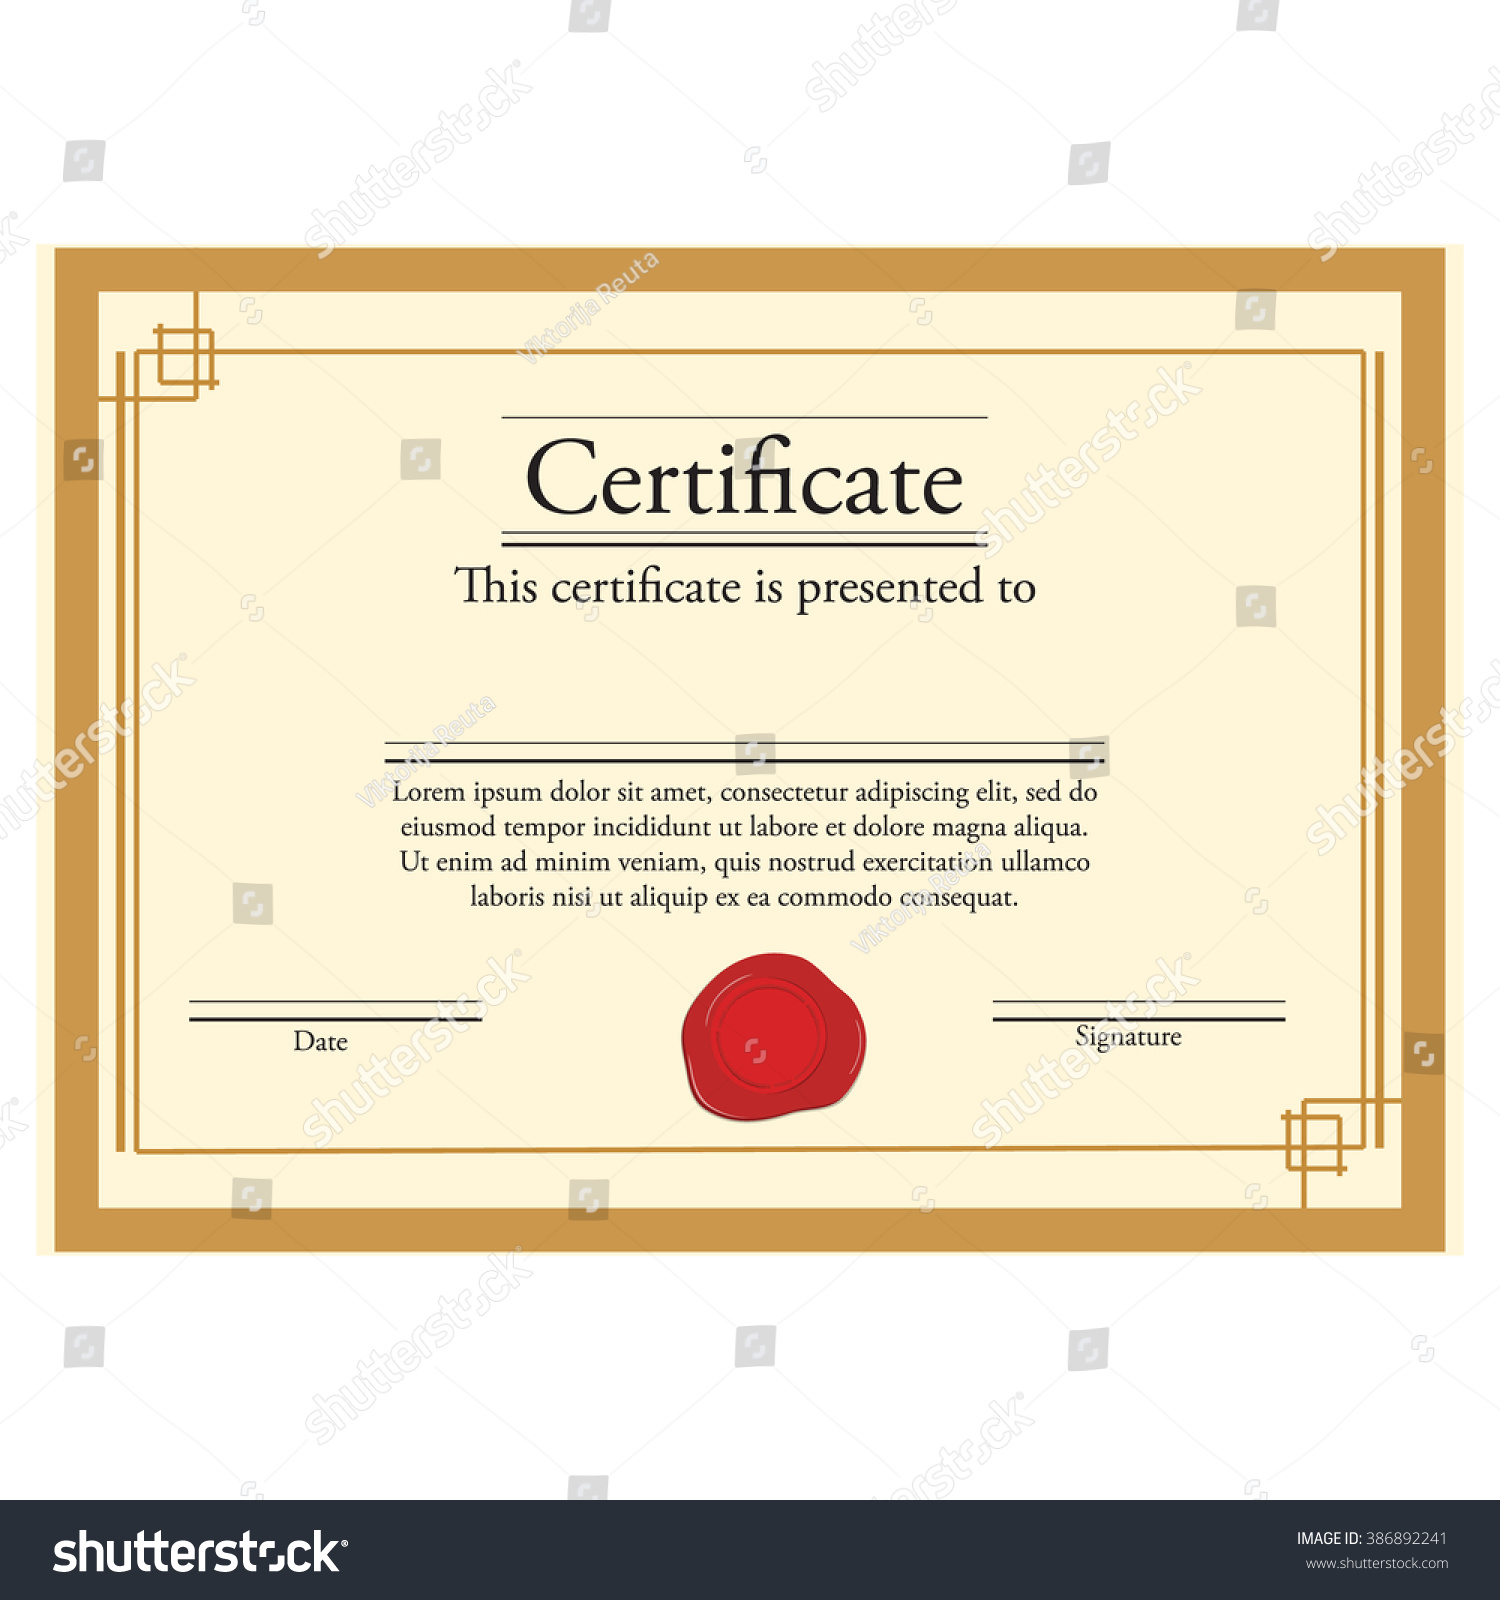 Vector illustration certificate template red wax stock vector vector illustration of certificate template with red wax stamp and golden frame certificate border xflitez Choice Image